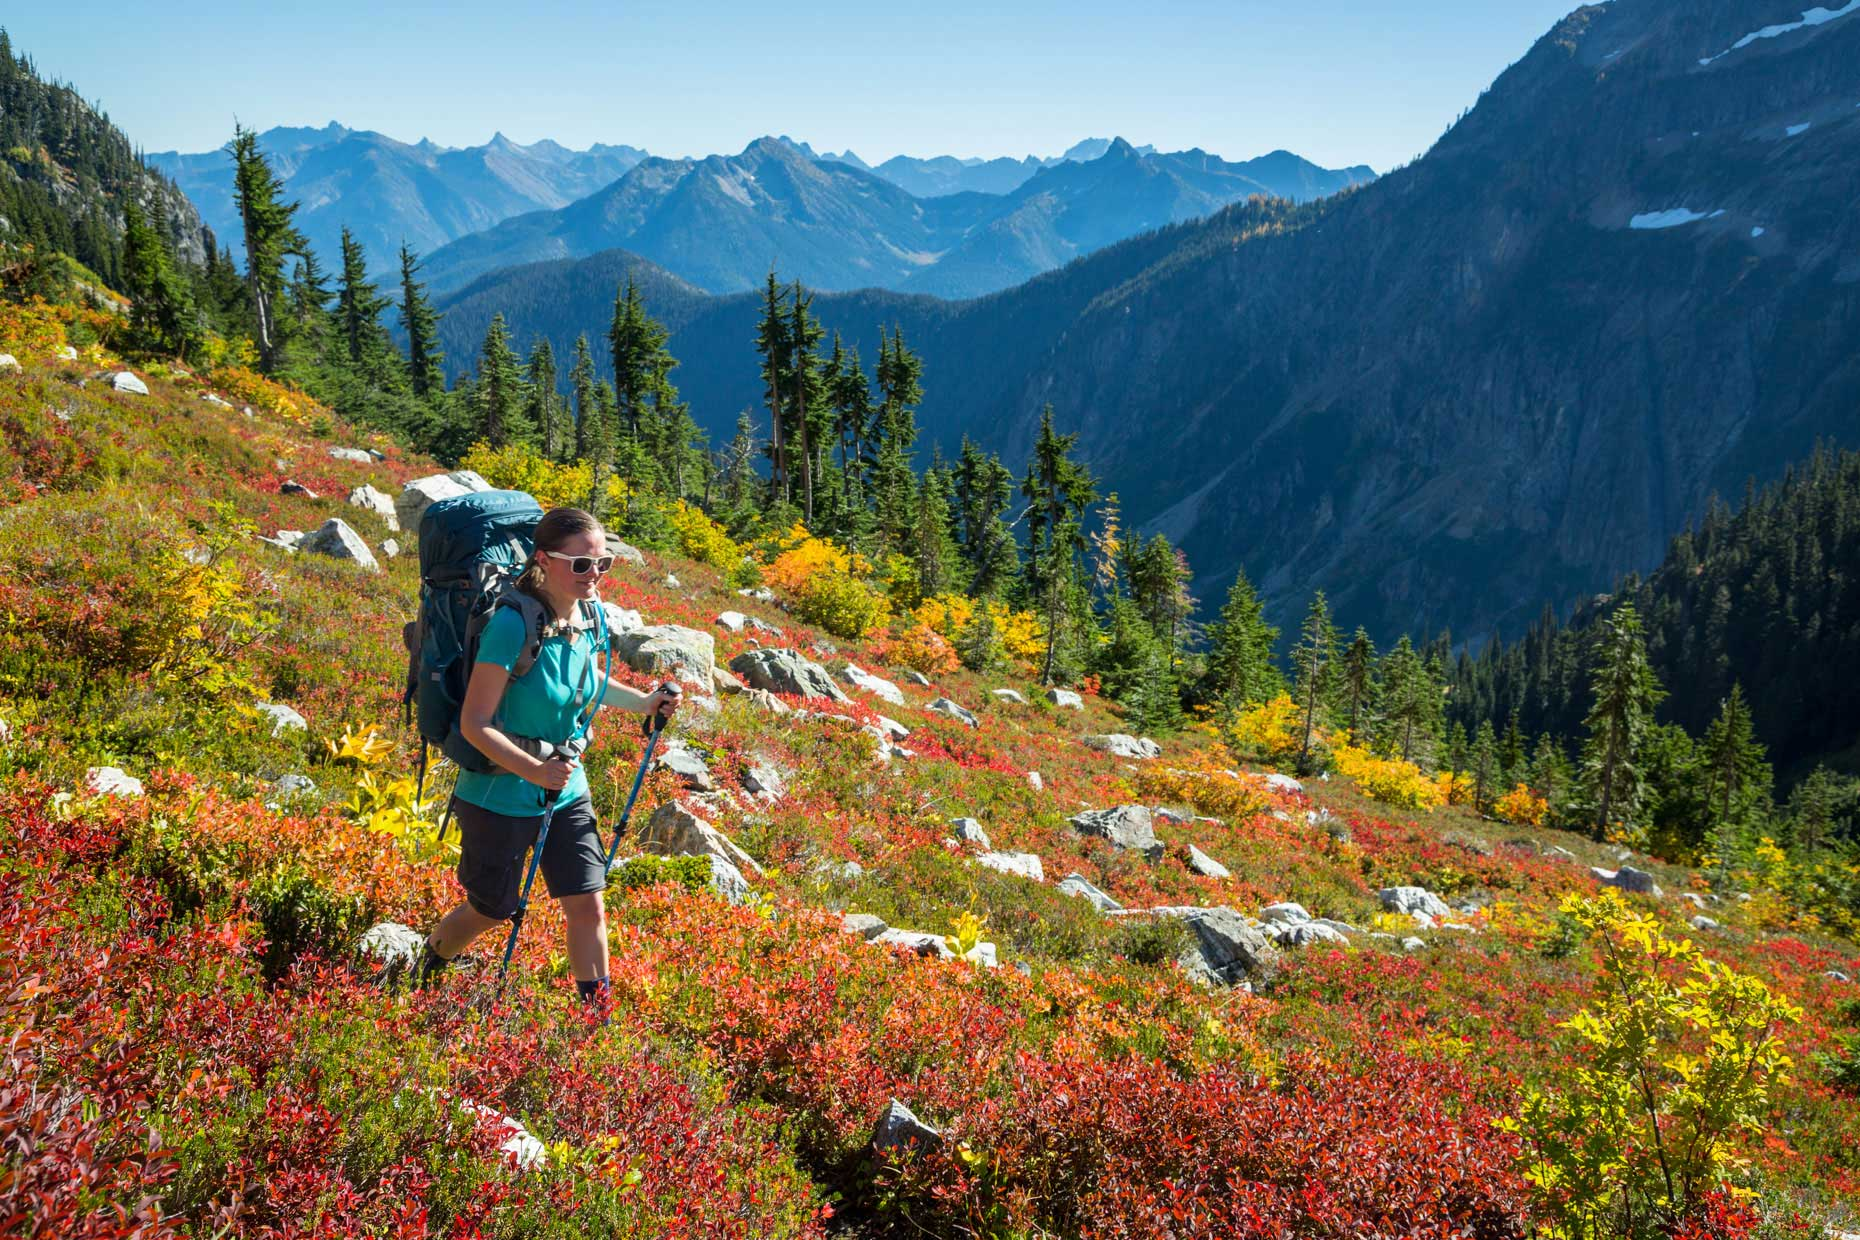 Backpacking in the North Cascades National Park